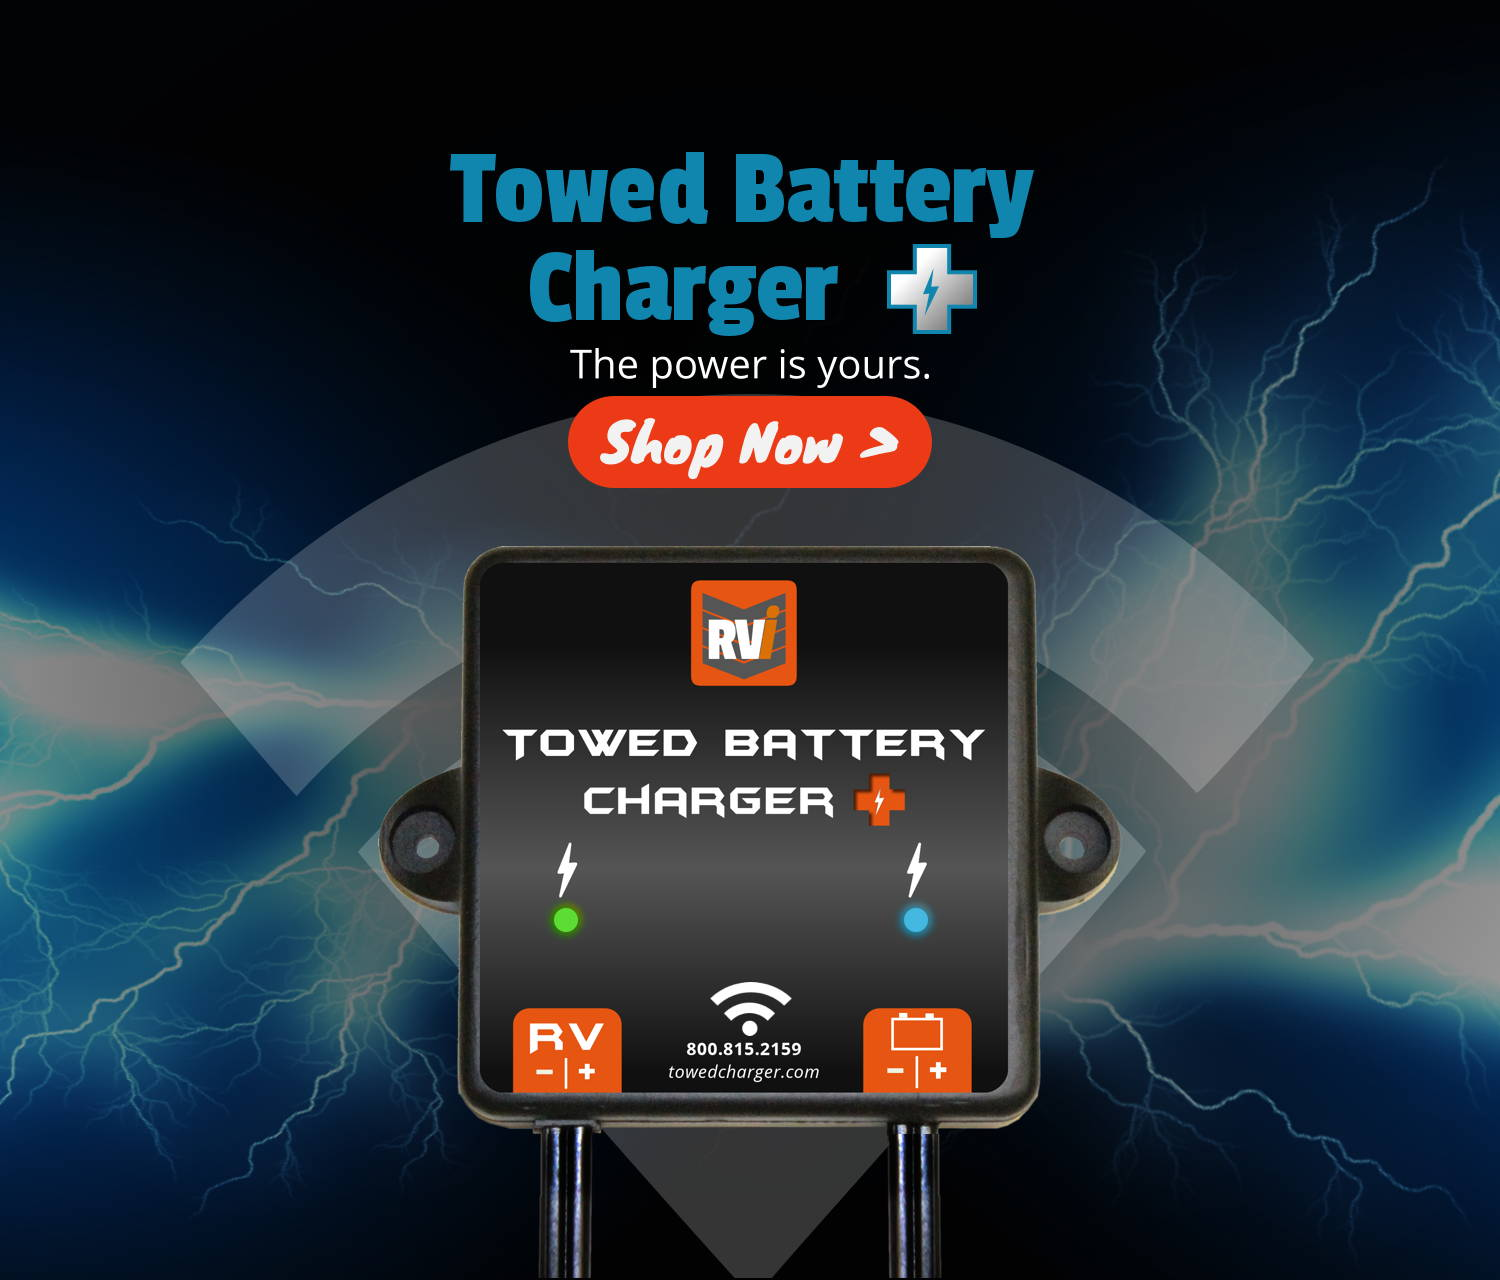 Towed Battery Charger Plus